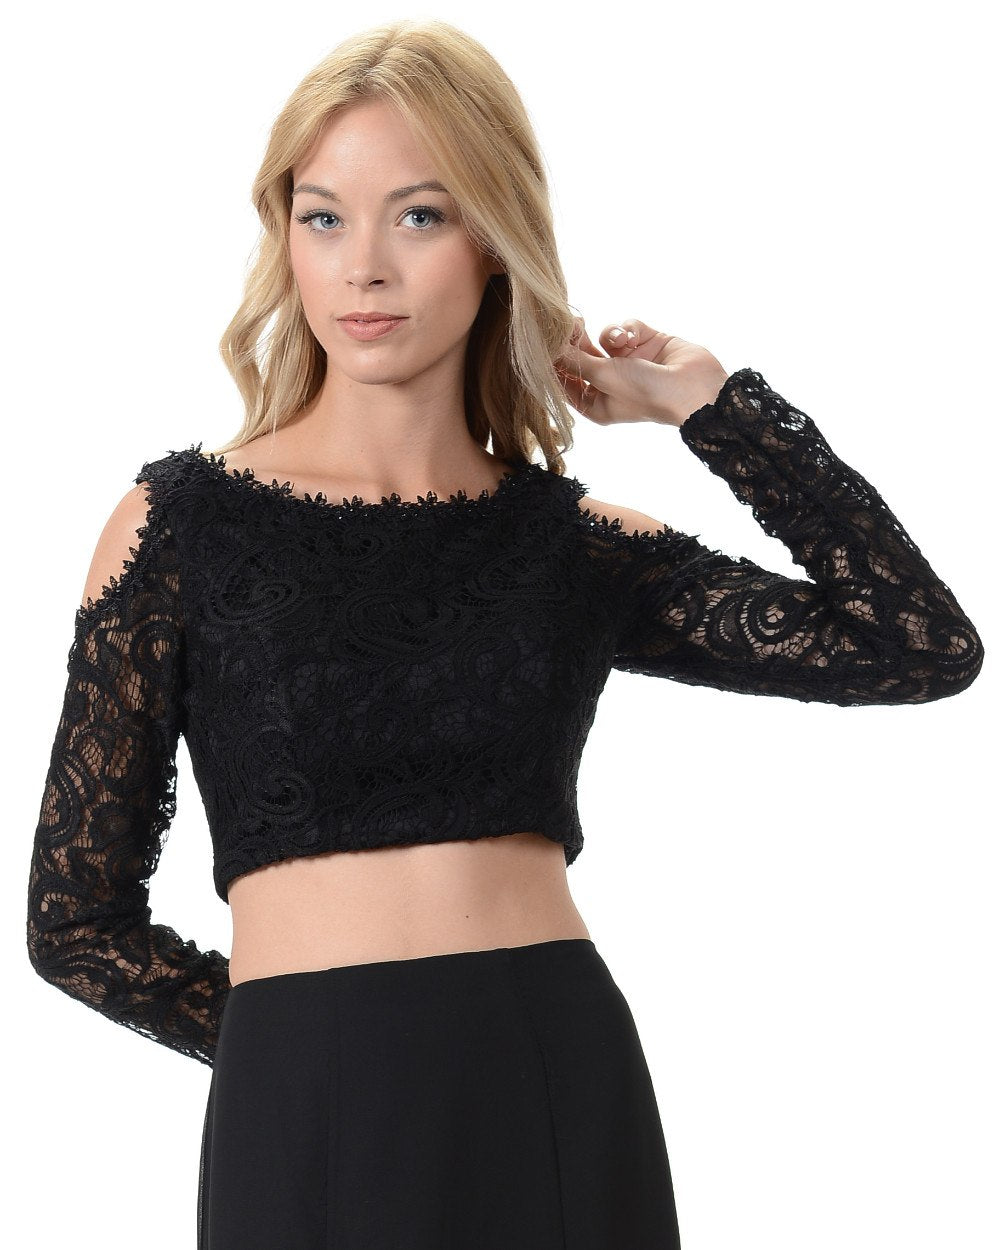 a249e708b706a6 Poly USA T14 - Black Lace Cold Shoulder Crop Top With Long Sleeves ...